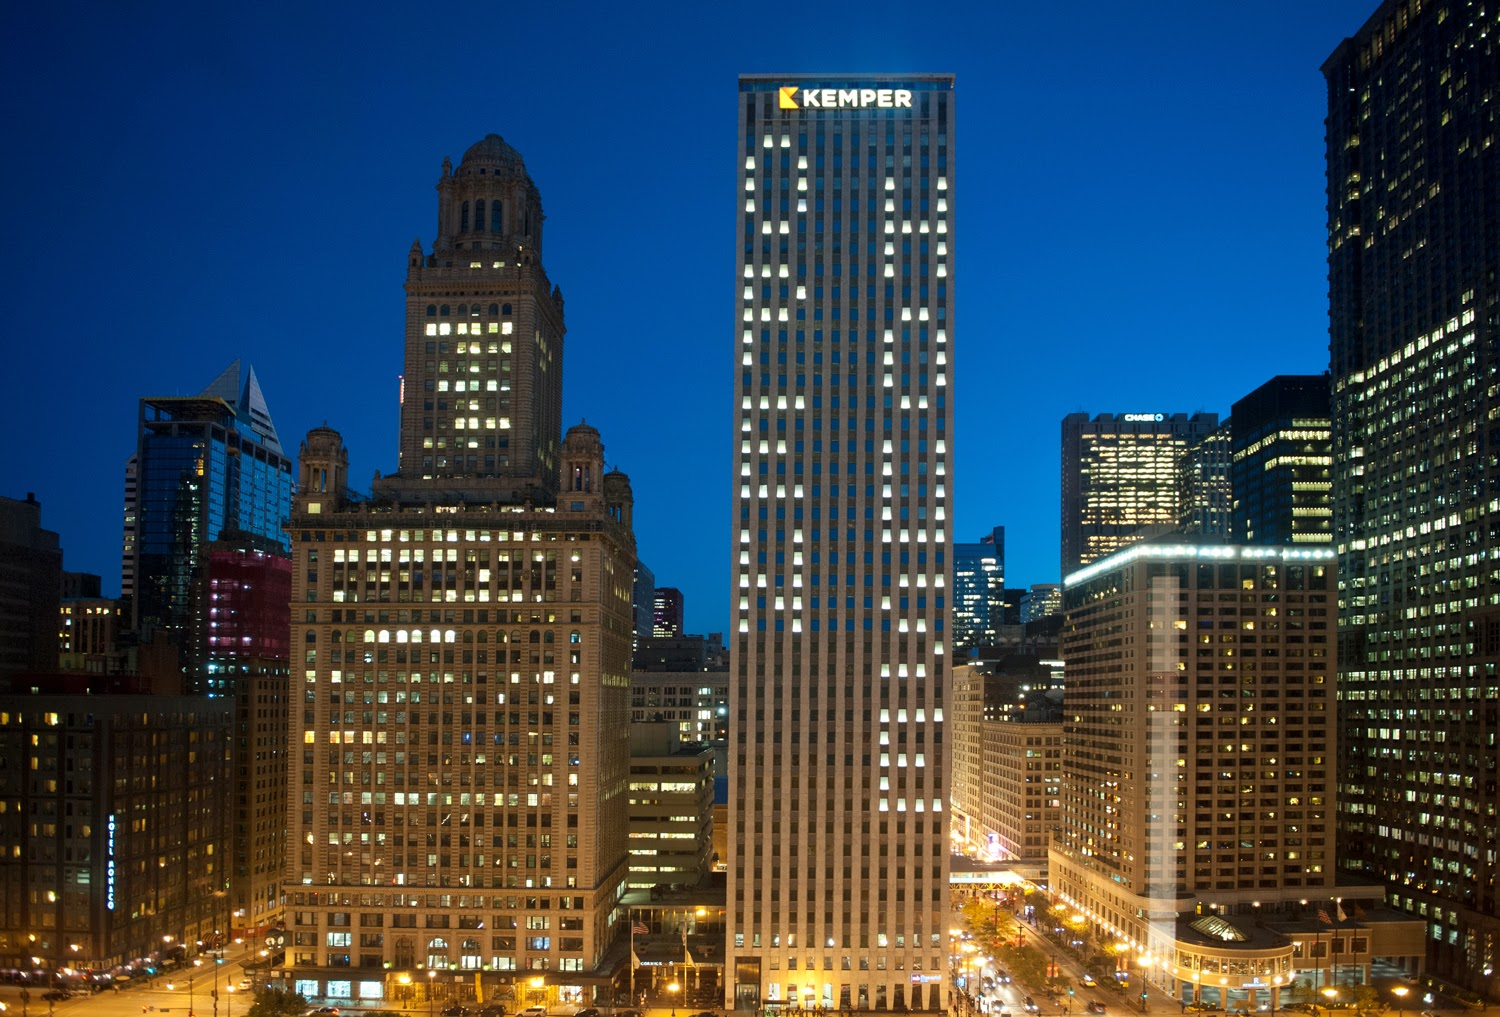 Historic Chicago Architecture chiil mama: this weekend: free open house chicago festival & win a